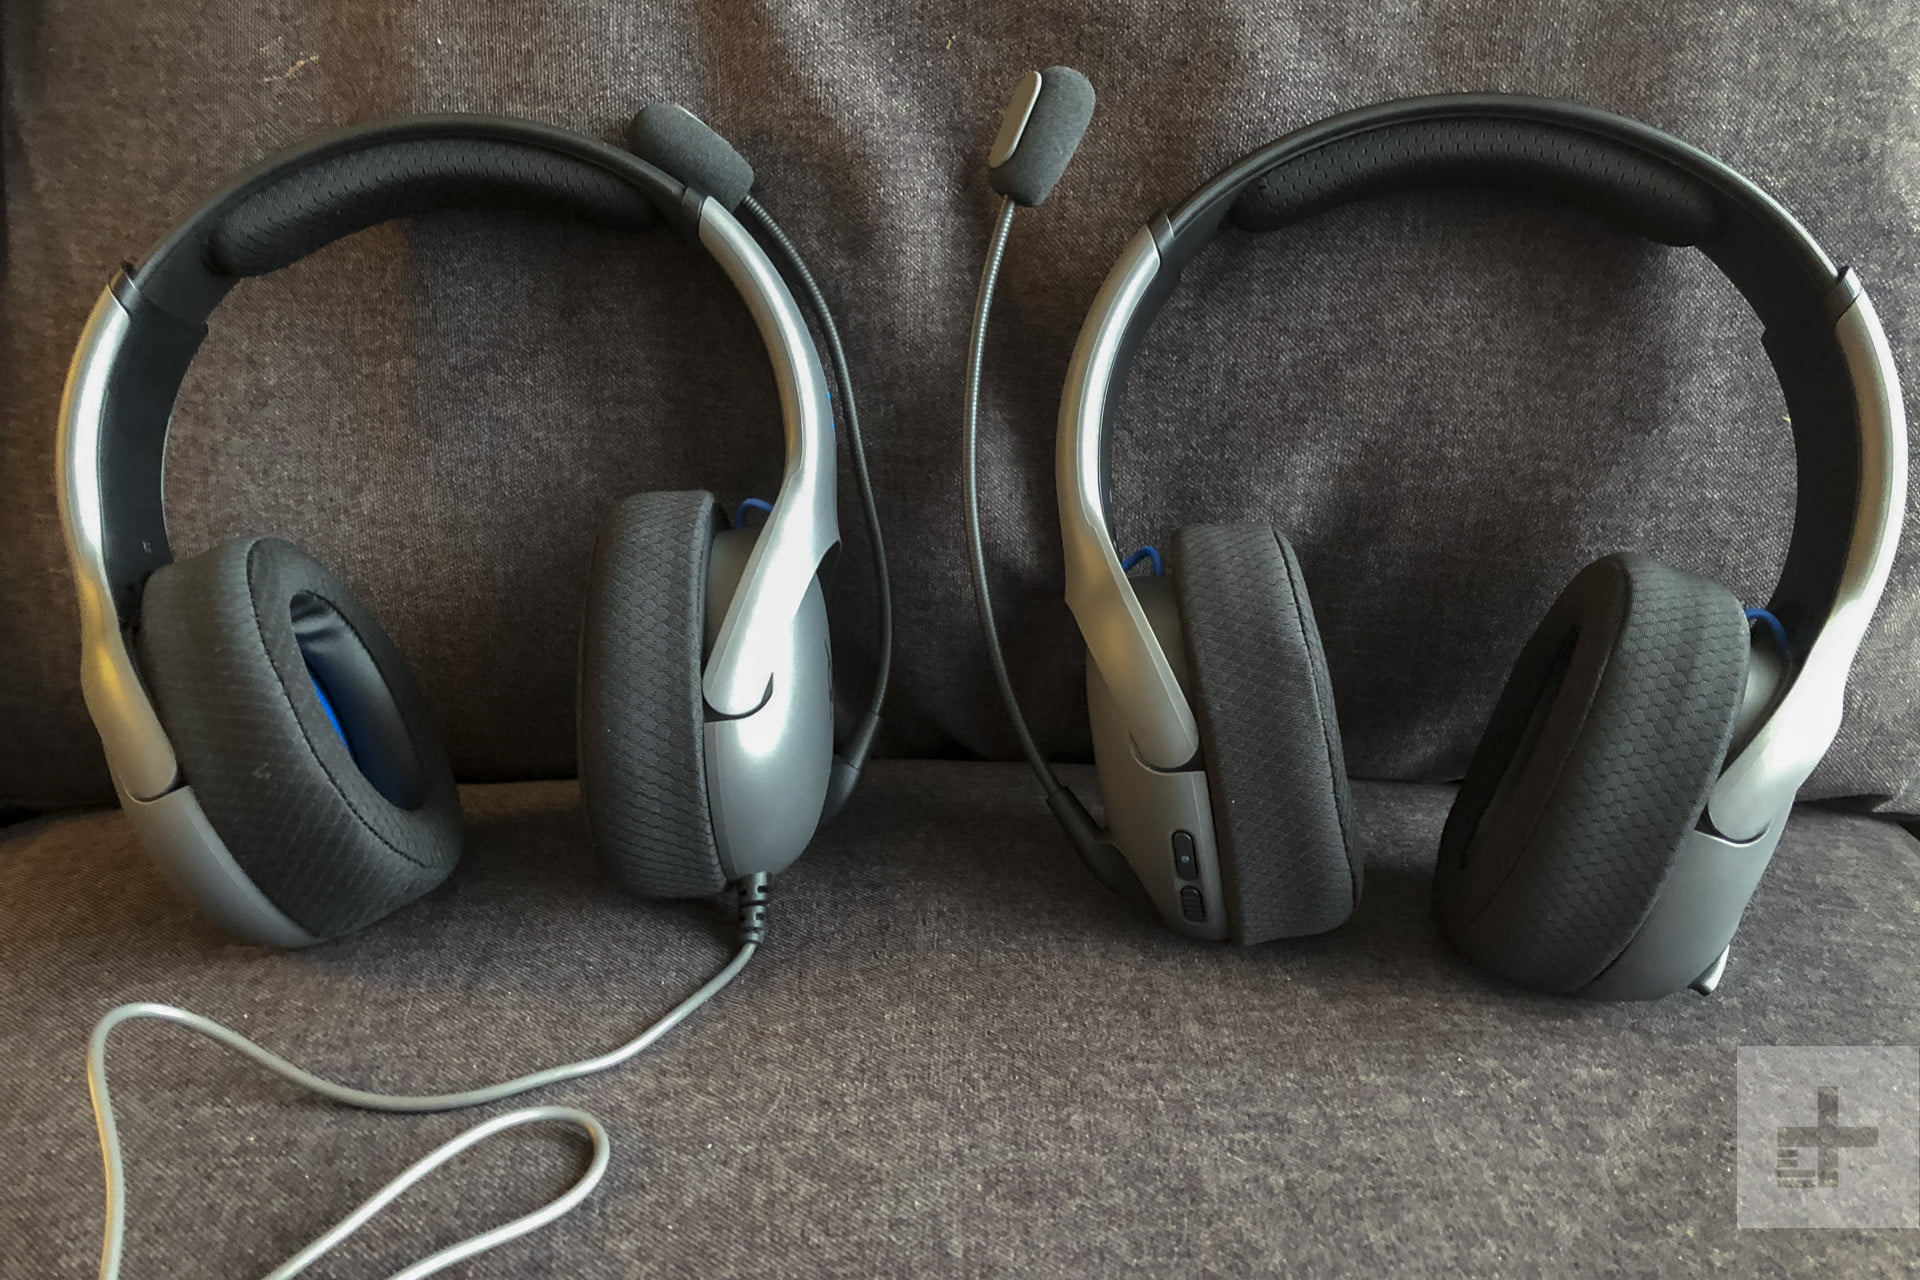 b1516a36487 The PDP LVL 50 Headsets Prove Price Doesn't Always Equal Quality ...